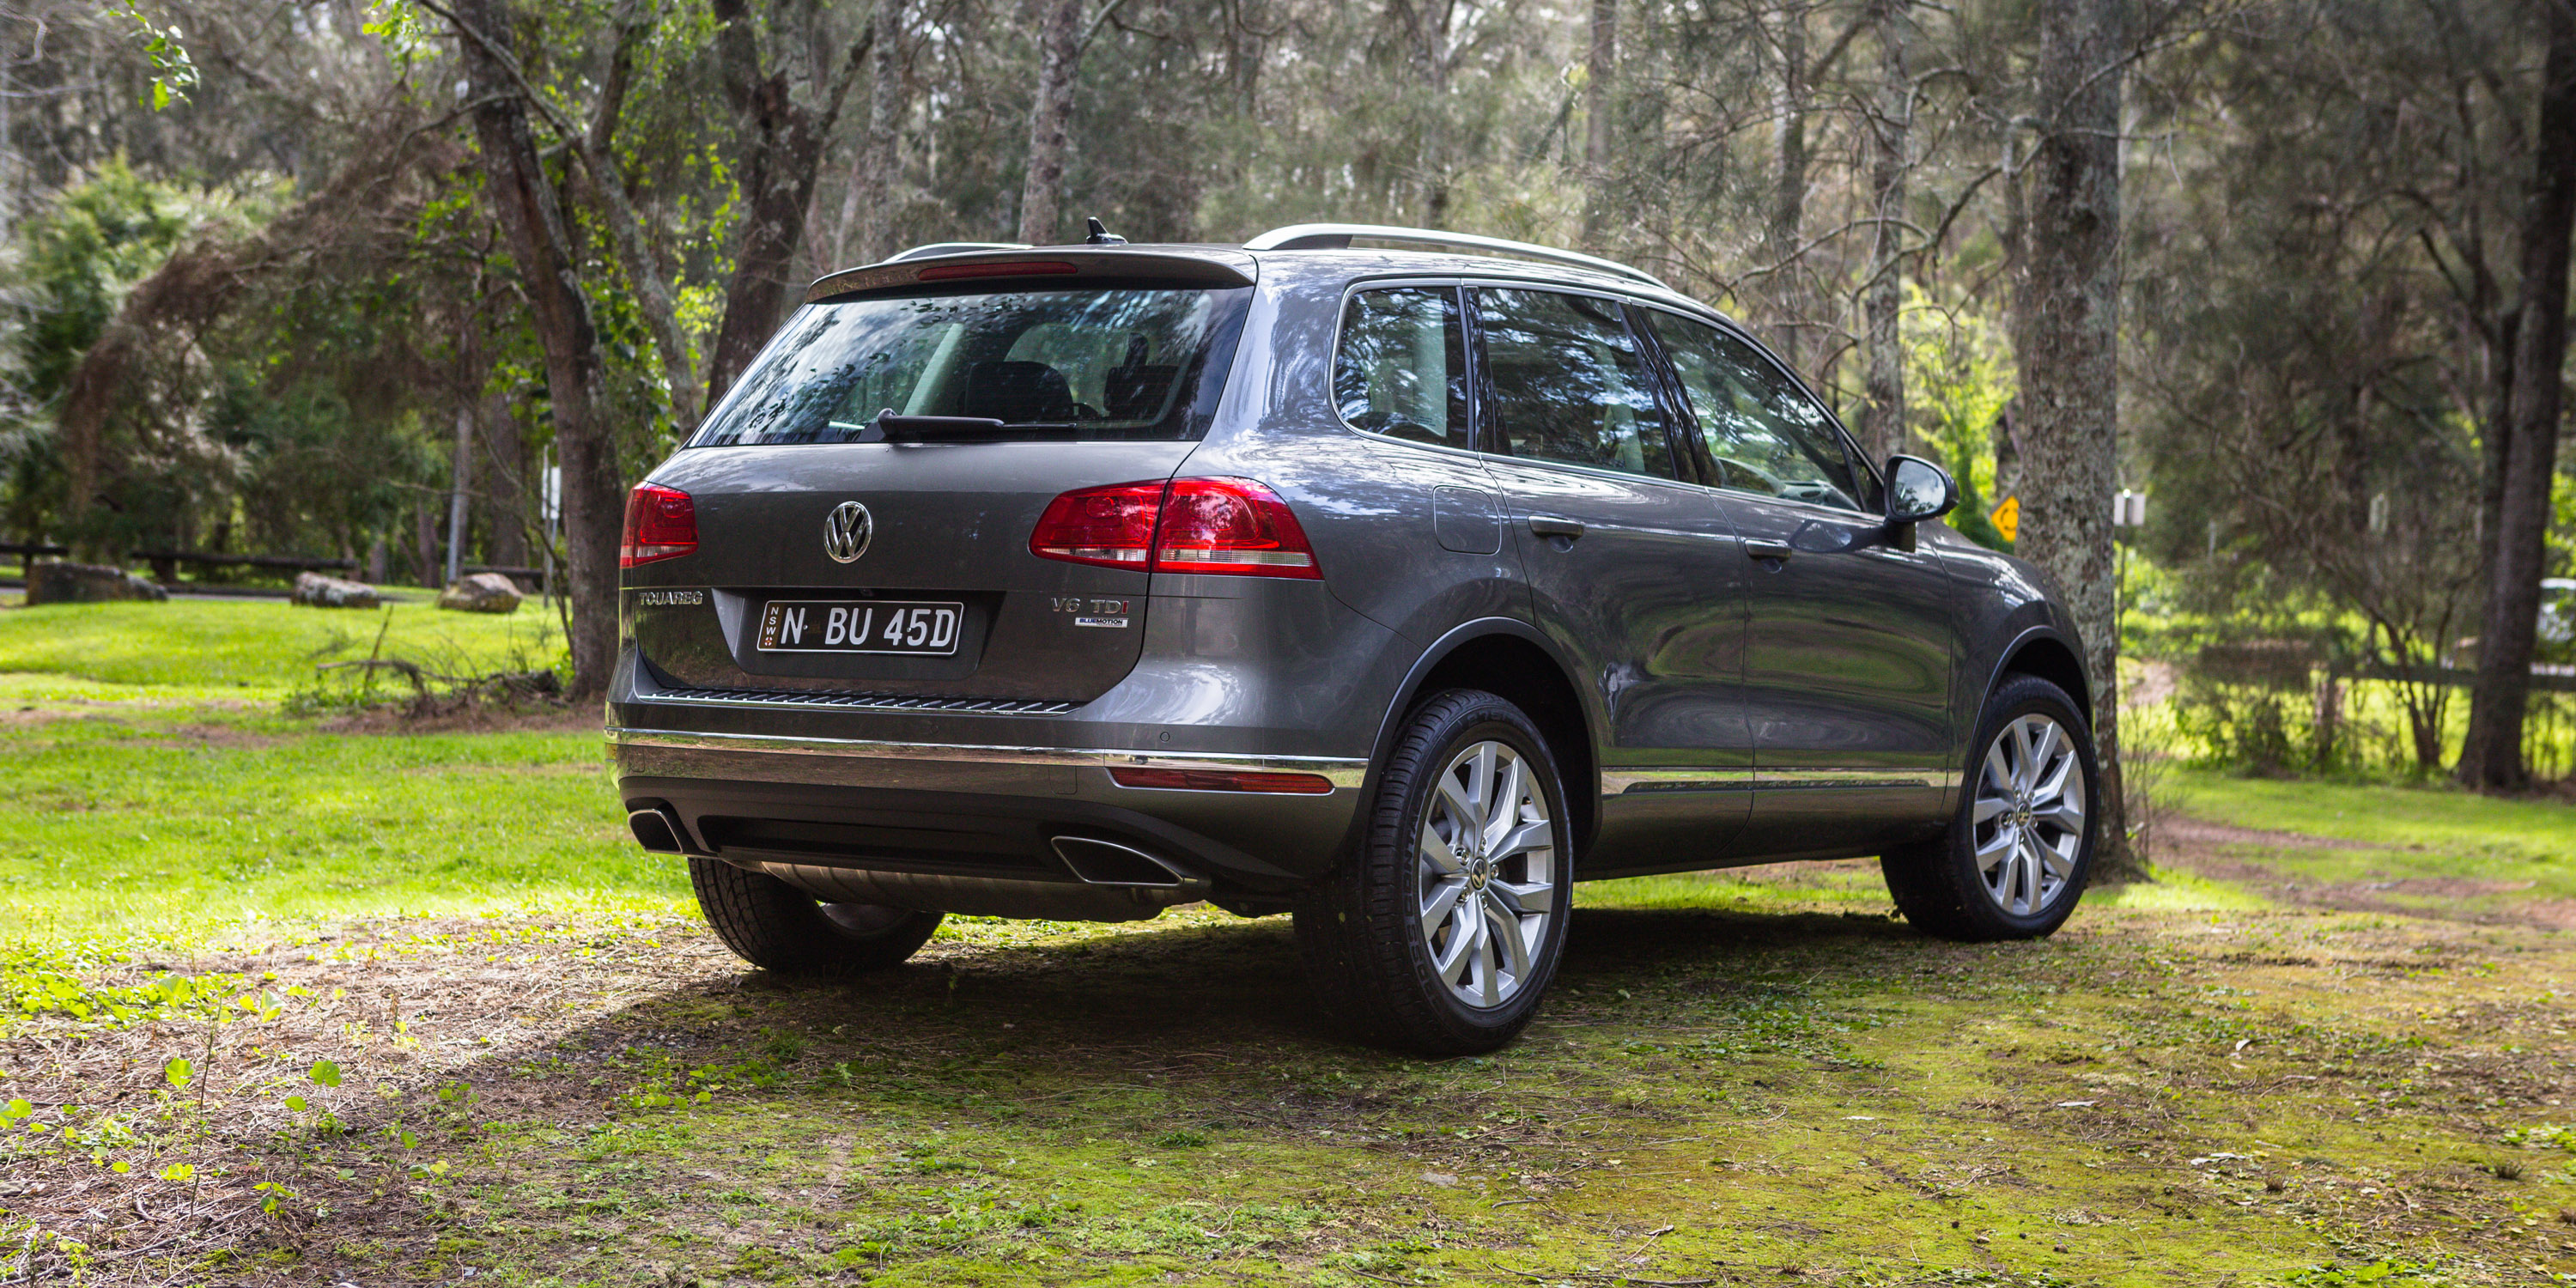 story money touareg utility is vw suv luxurious made cars volkswagen